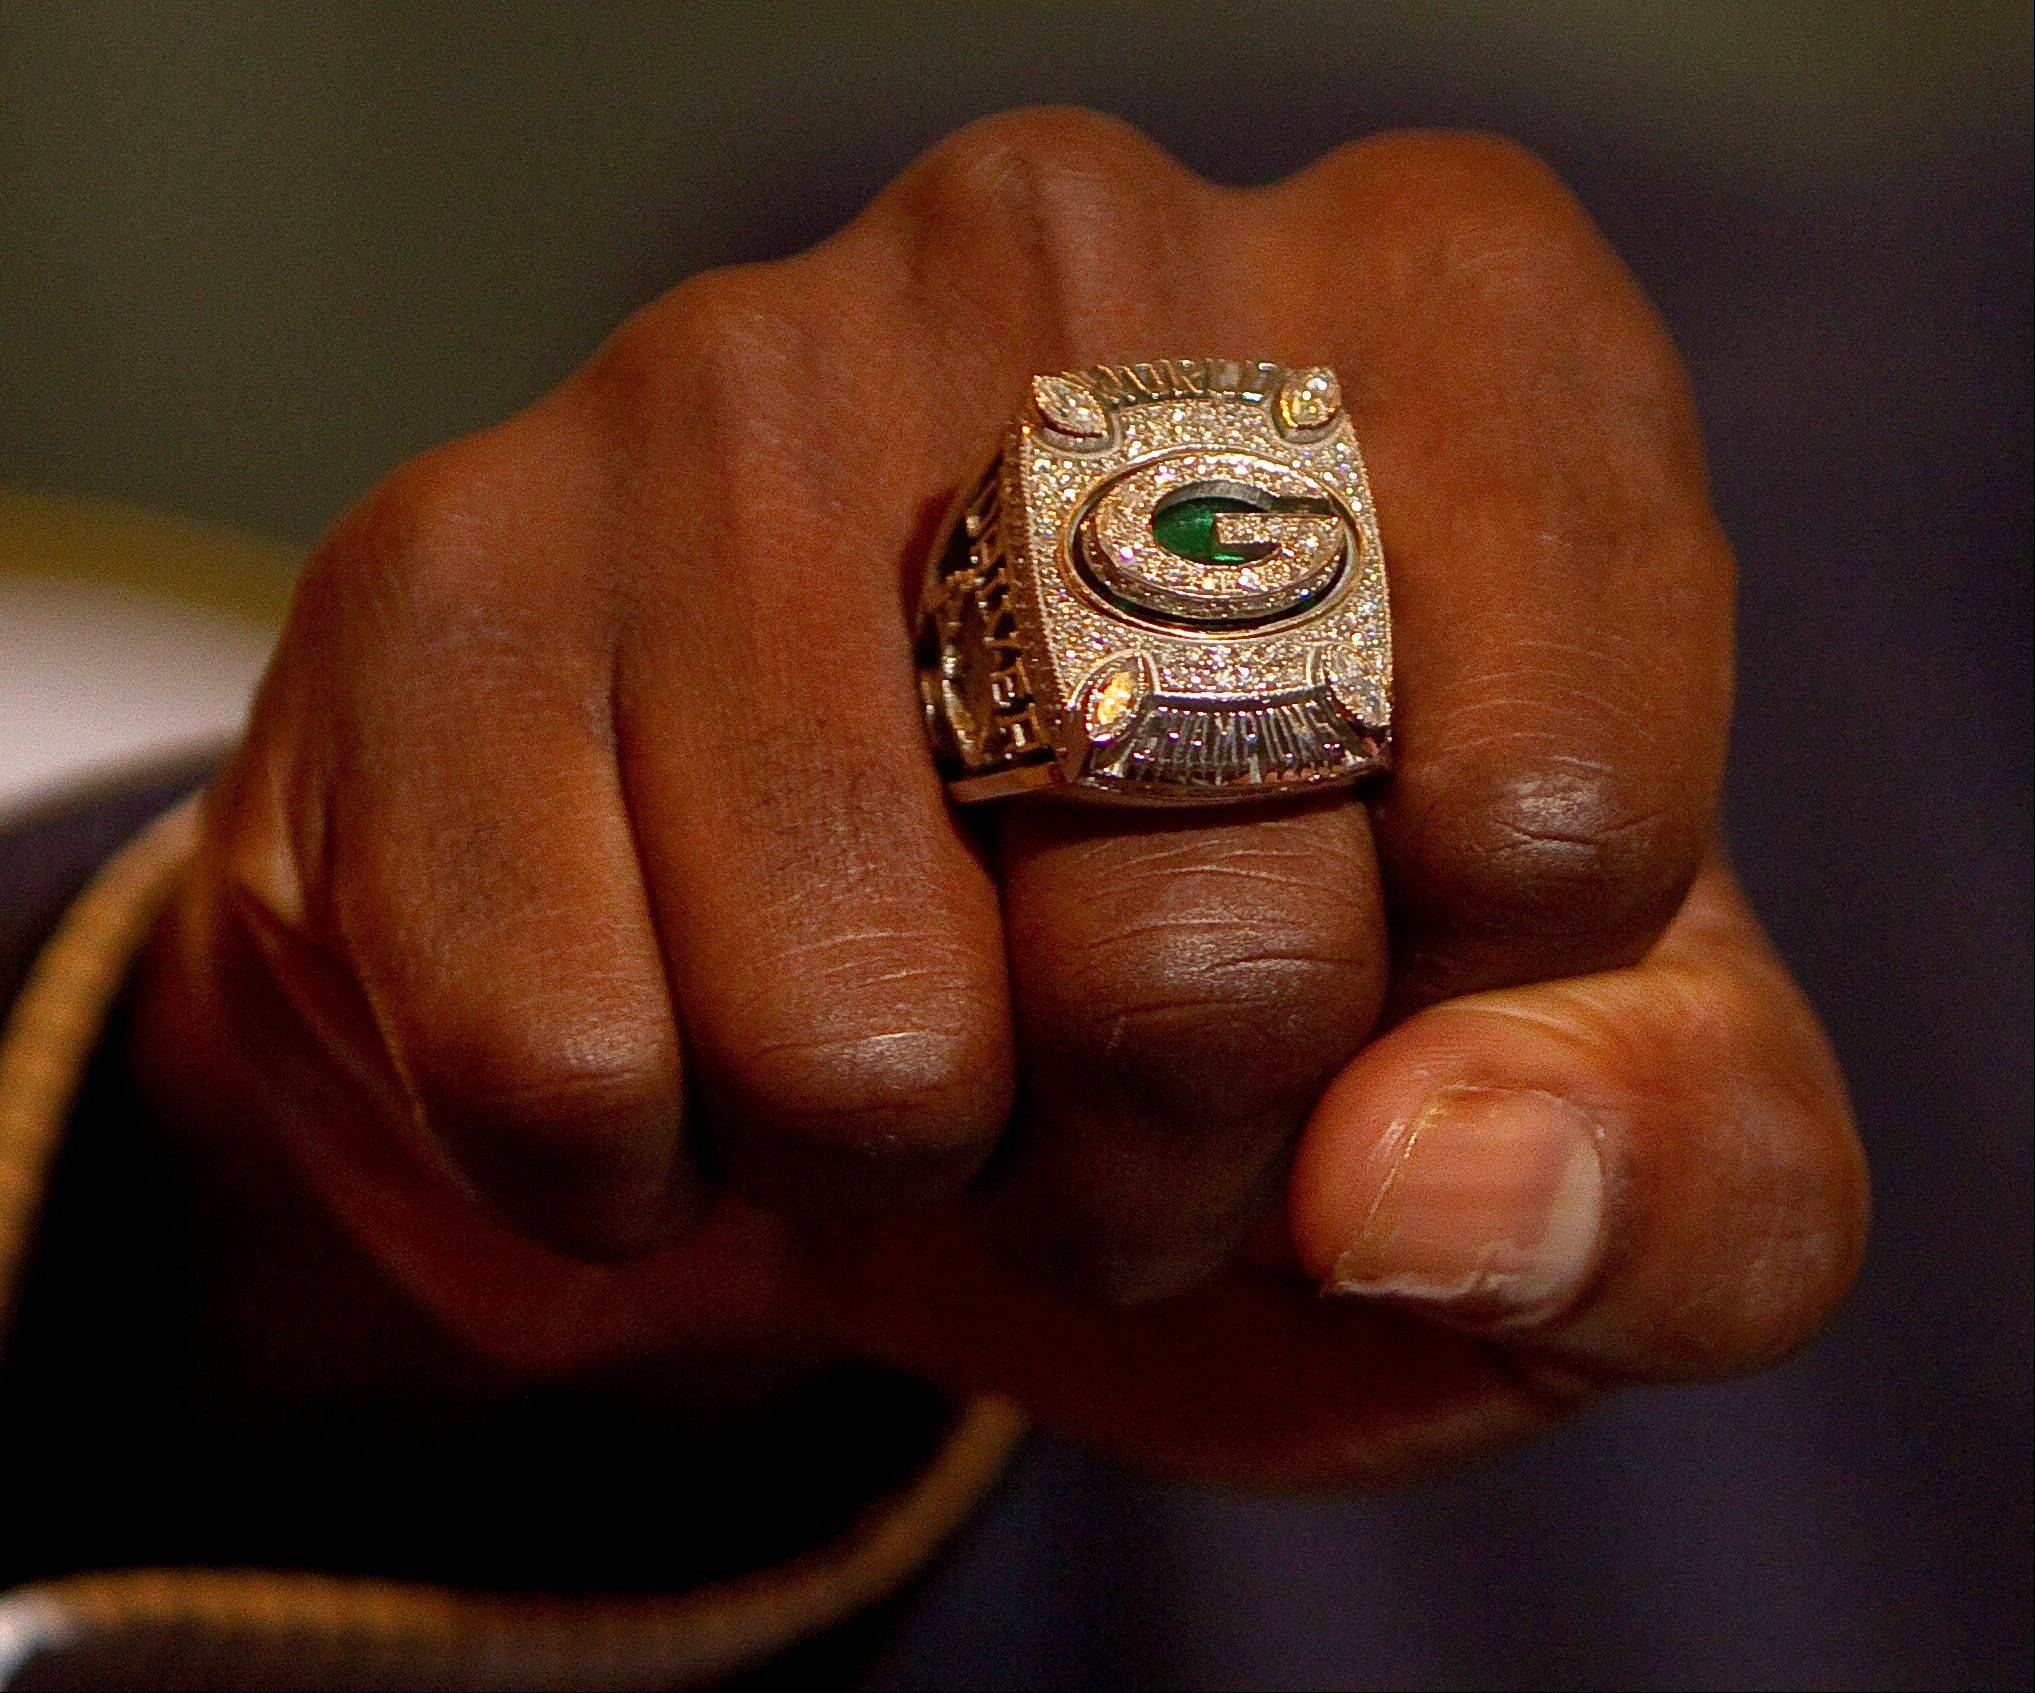 Federal agents discovered a Green Bay Packers Super Bowl ring like this one in the home of a Des Plaines man during an investigation into drug trafficking in May.